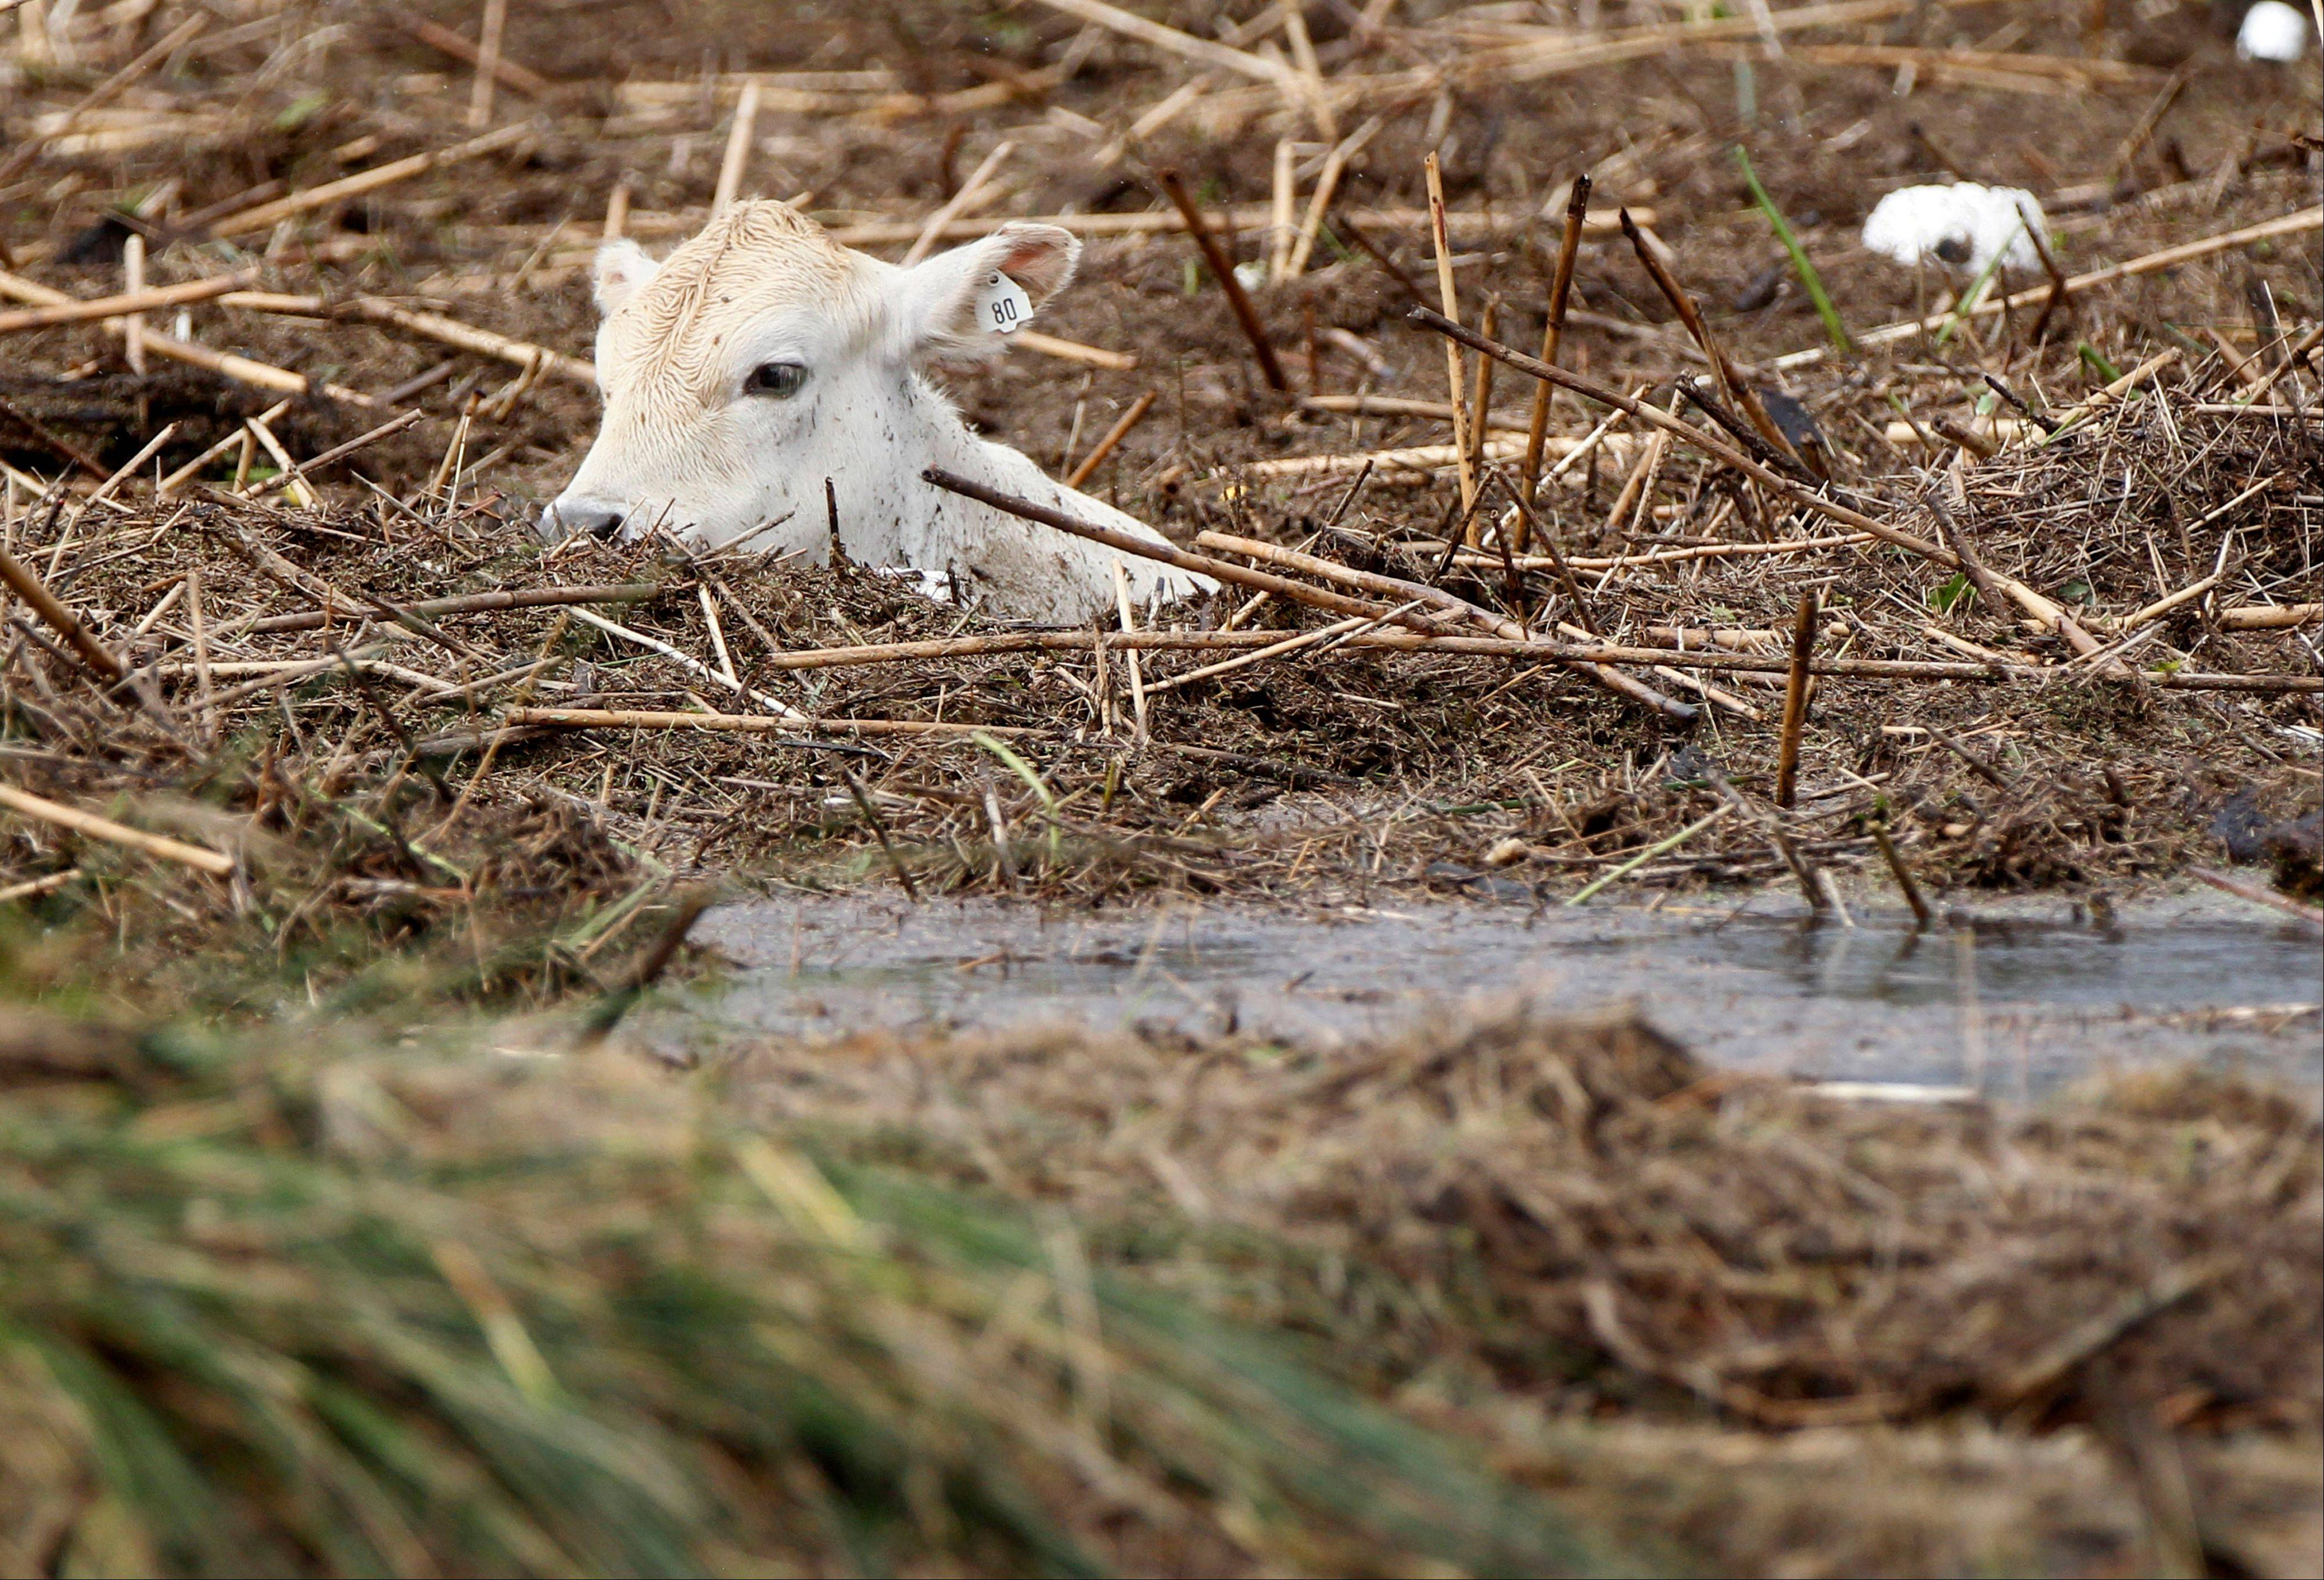 A submerged cow is stranded amid debris in floodwaters after Isaac passed through the region, in Plaquemines Parish, La., Thursday, Aug. 30, 2012.